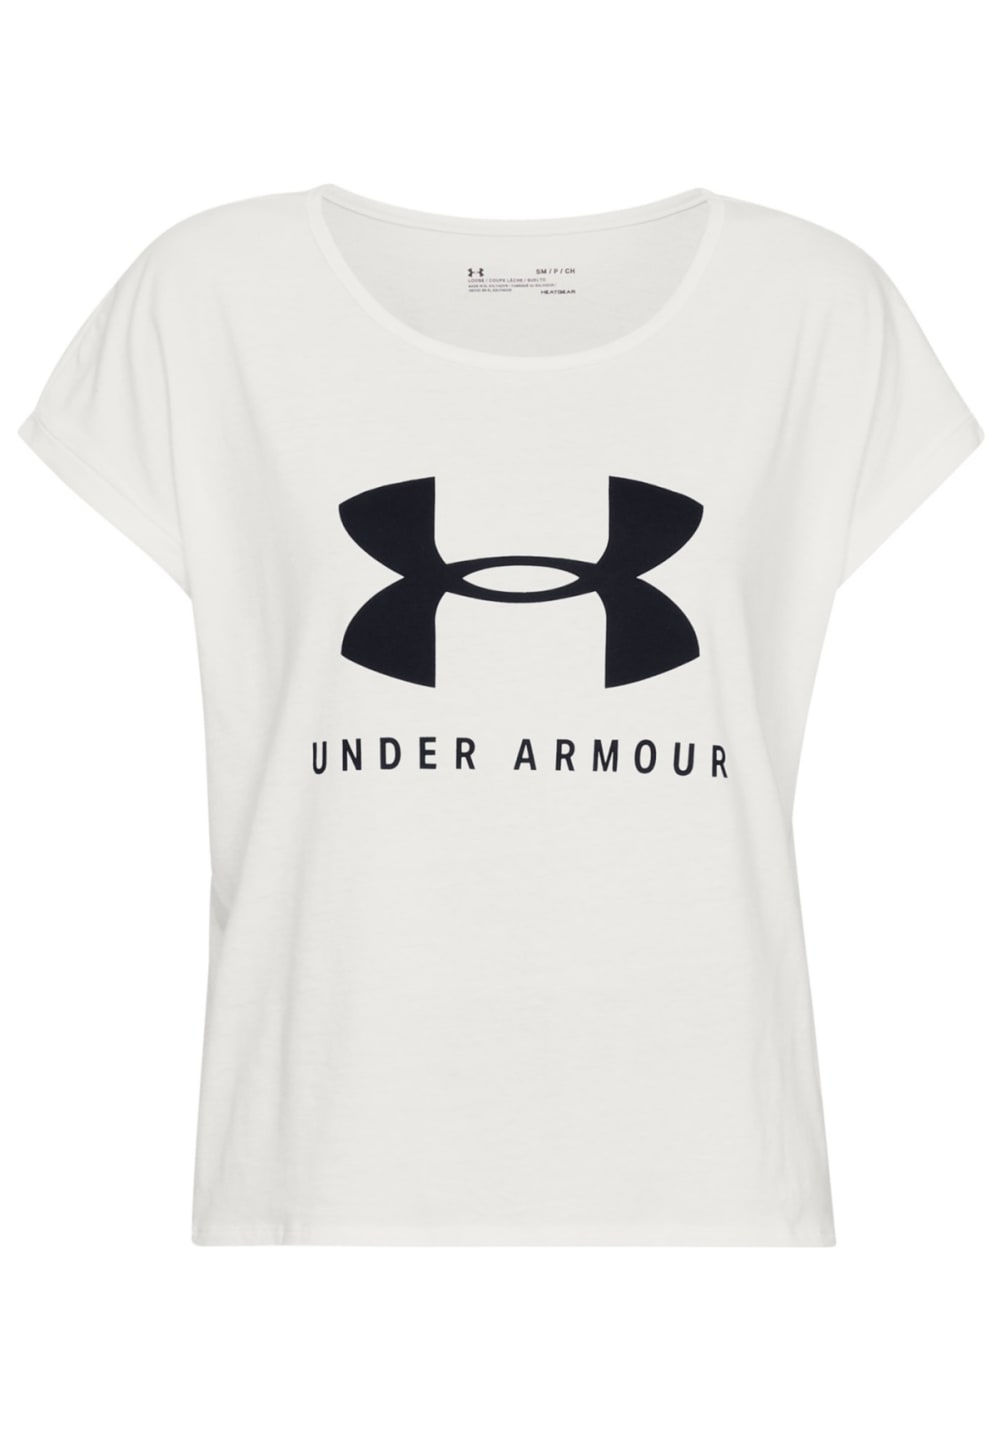 fa6380ae Under Armour Graphic Sportstyle Fashion Short Sleeve - T-Shirts for Women -  White